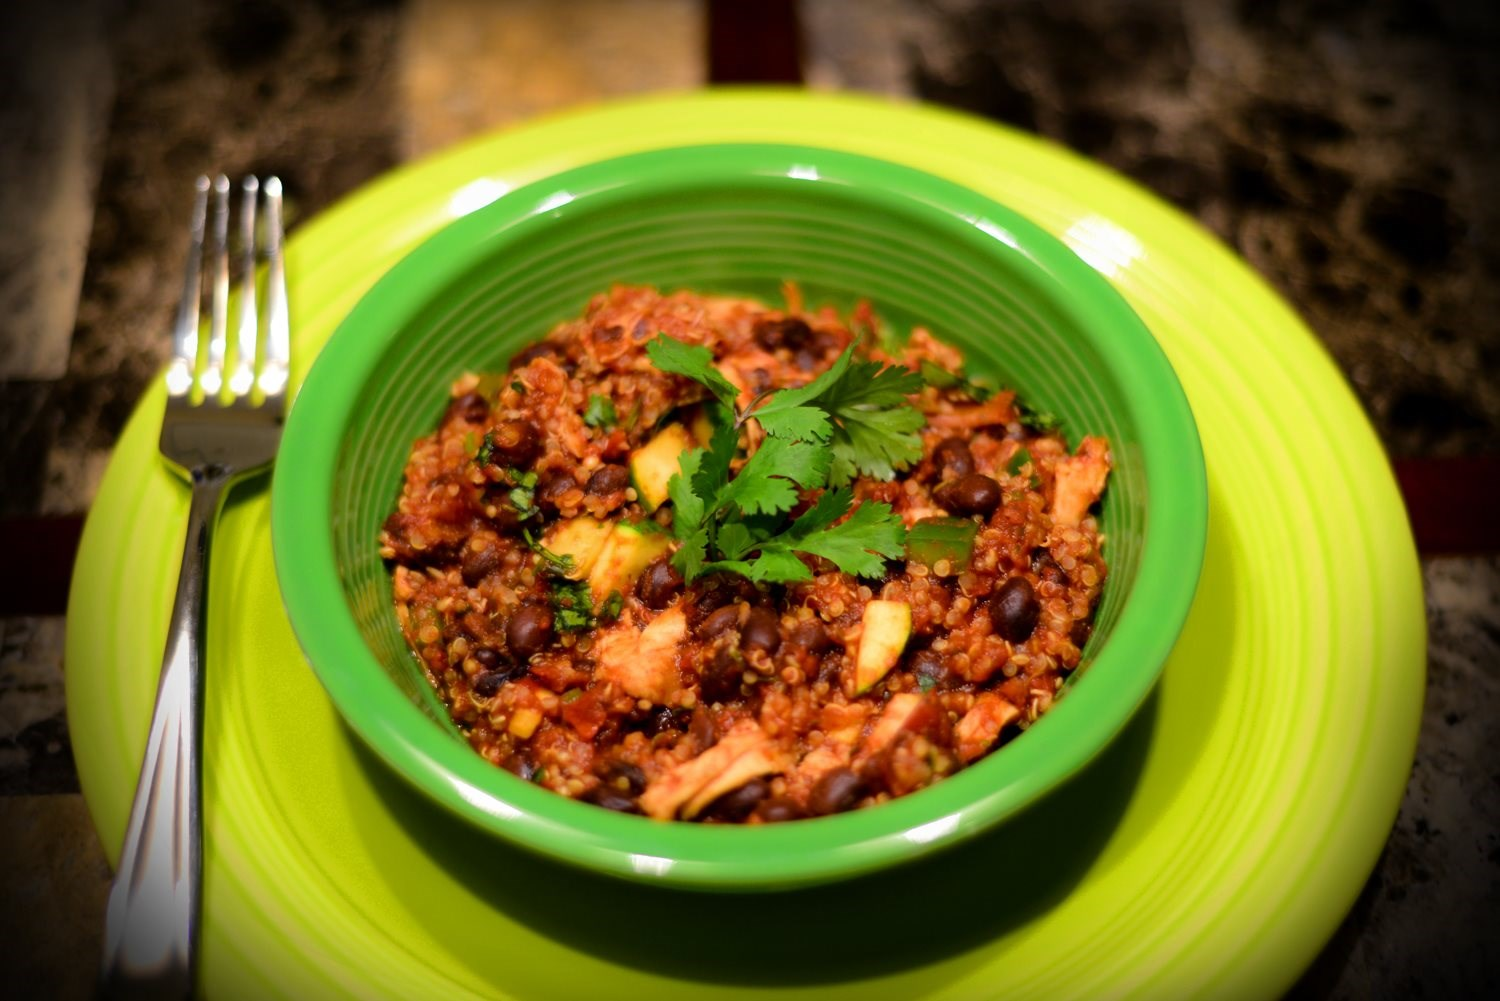 Chicken and Black Bean and Quinoa Chili